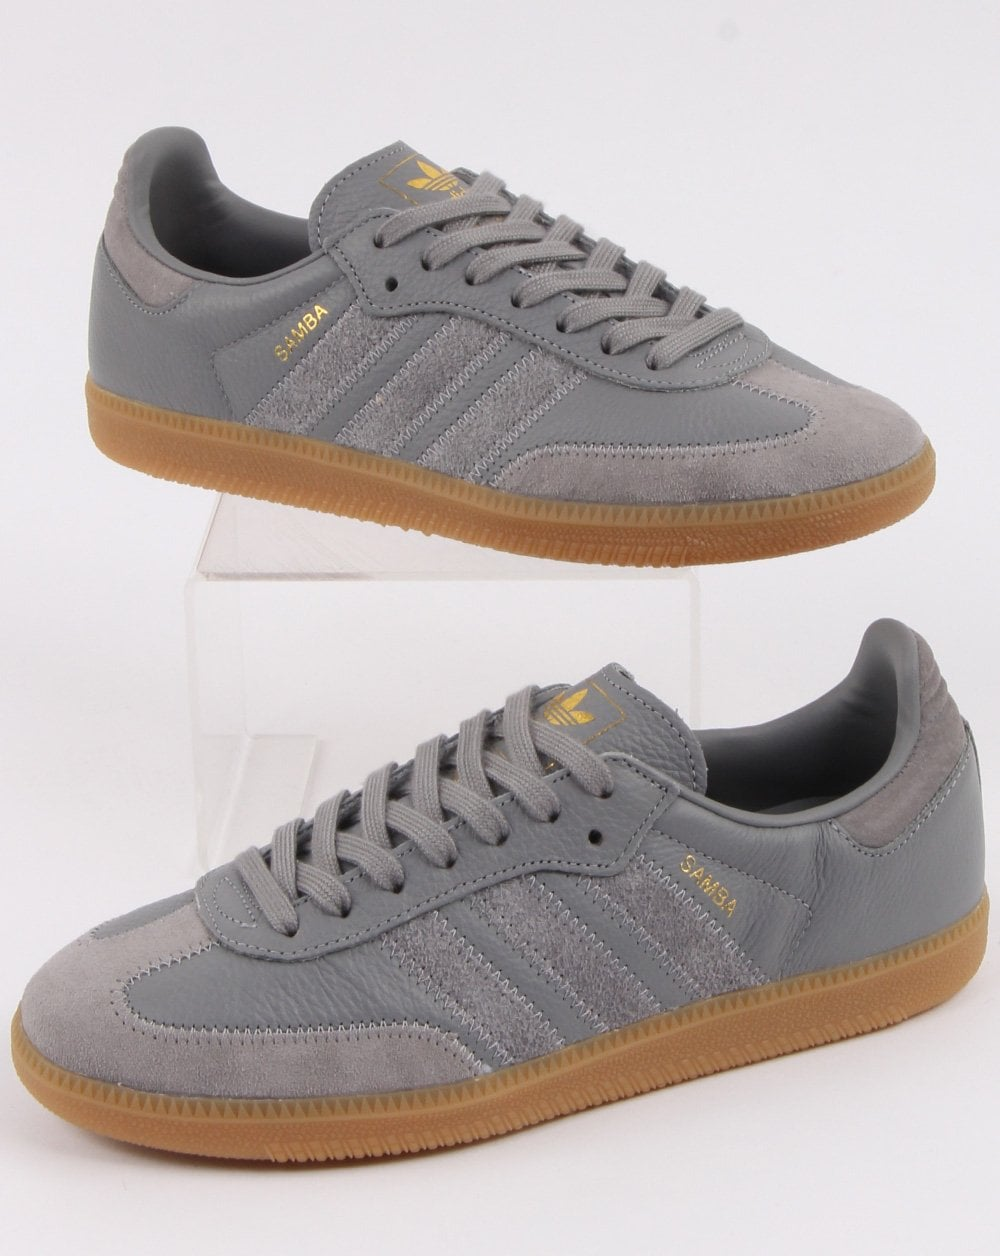 Adidas Samba Og Ft Trainers Grey